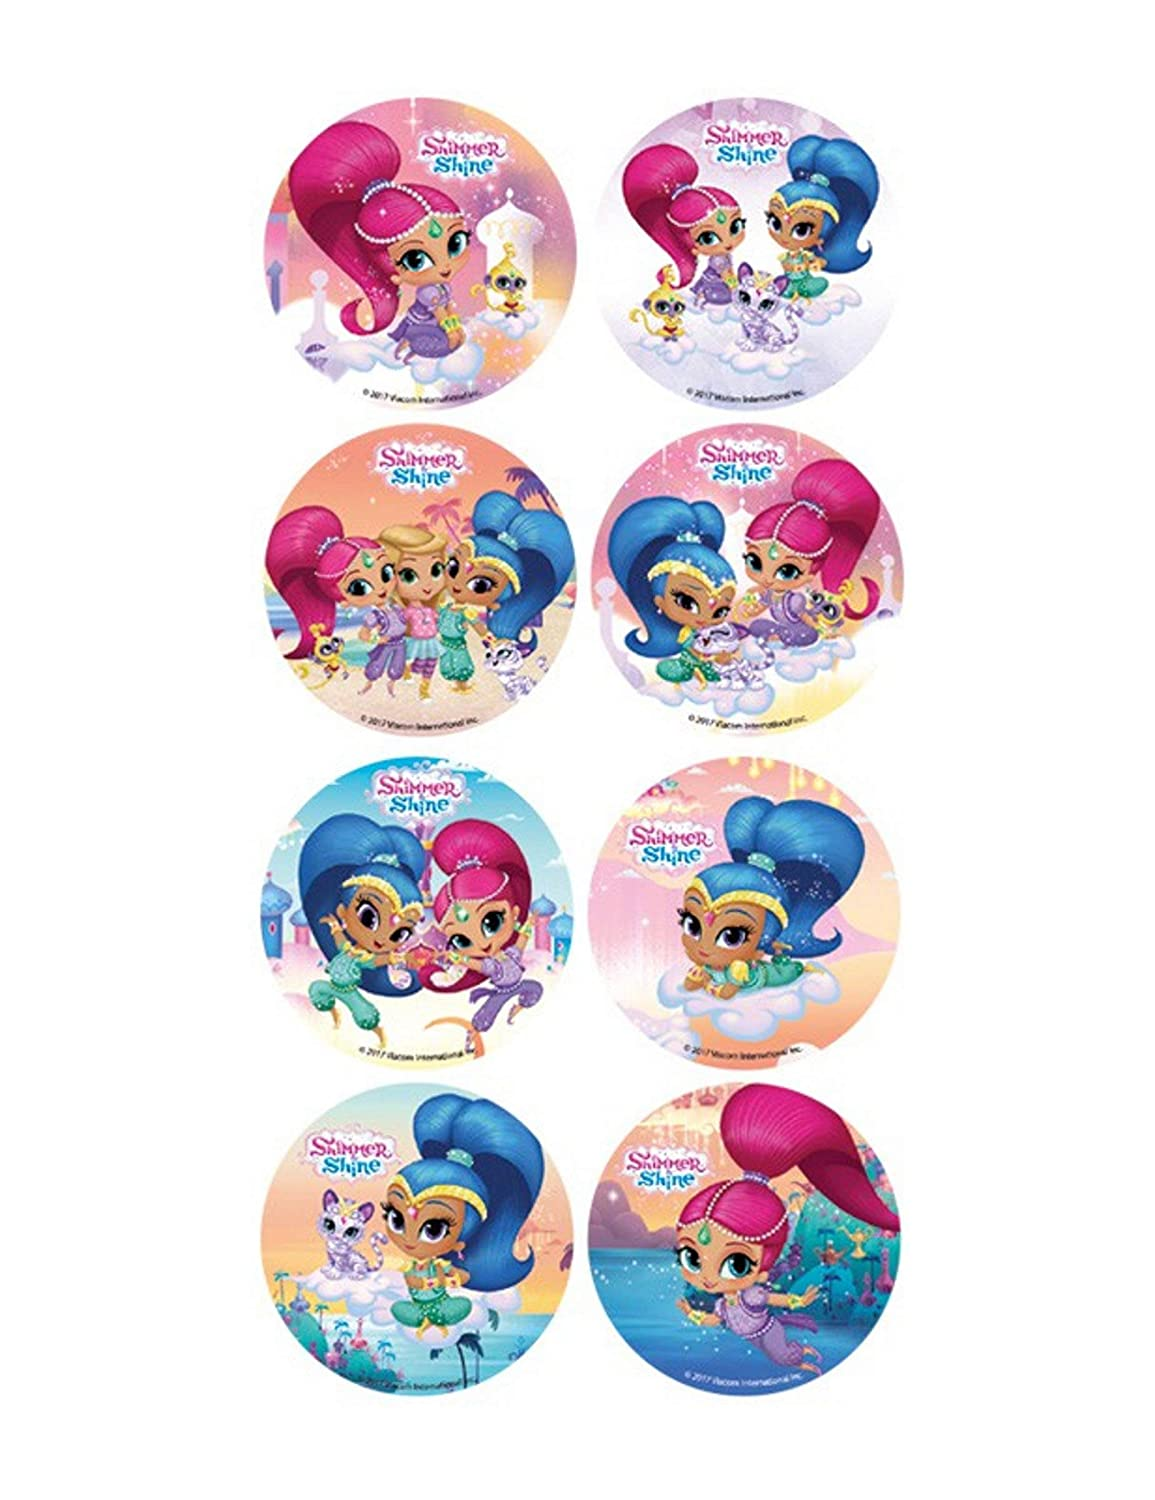 16 Mini discos de azúcar Shimmer and Shine 3,4 cm